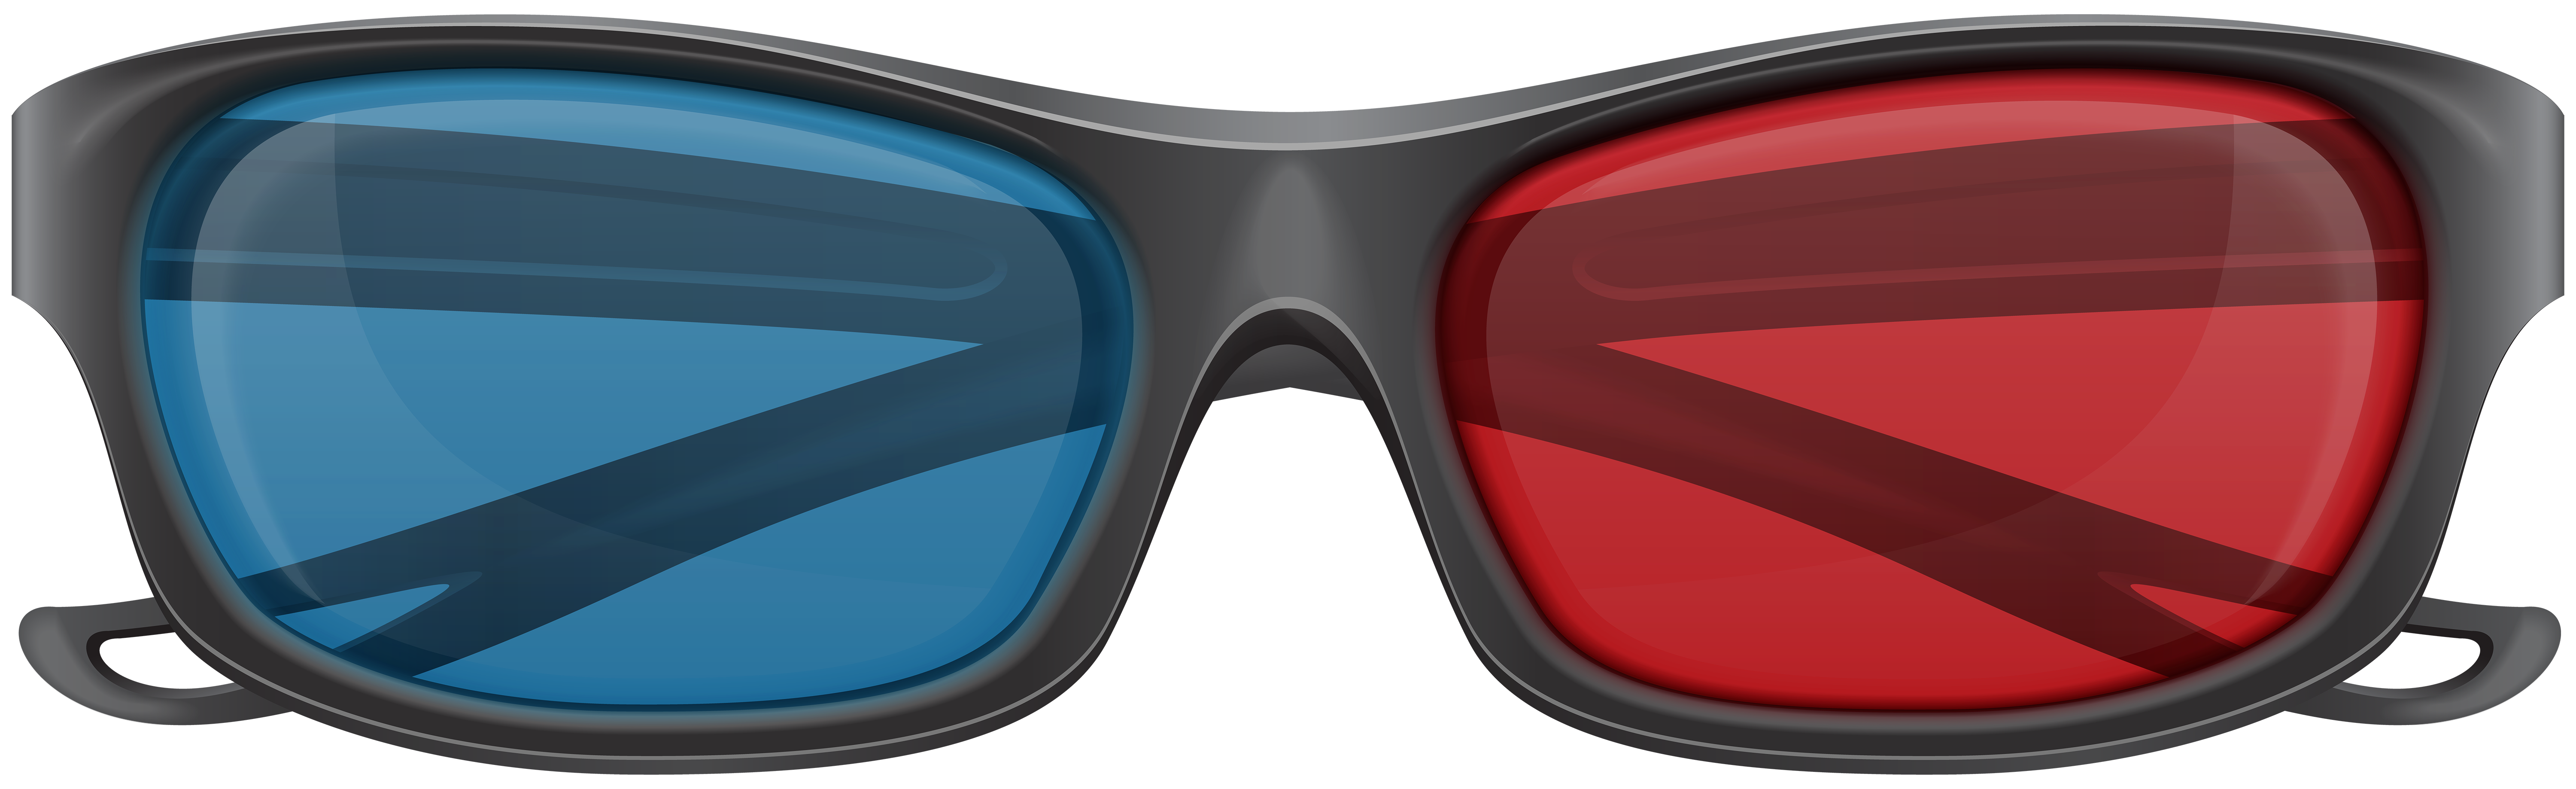 Cinema glasses png clip. Clipart sunglasses red white blue